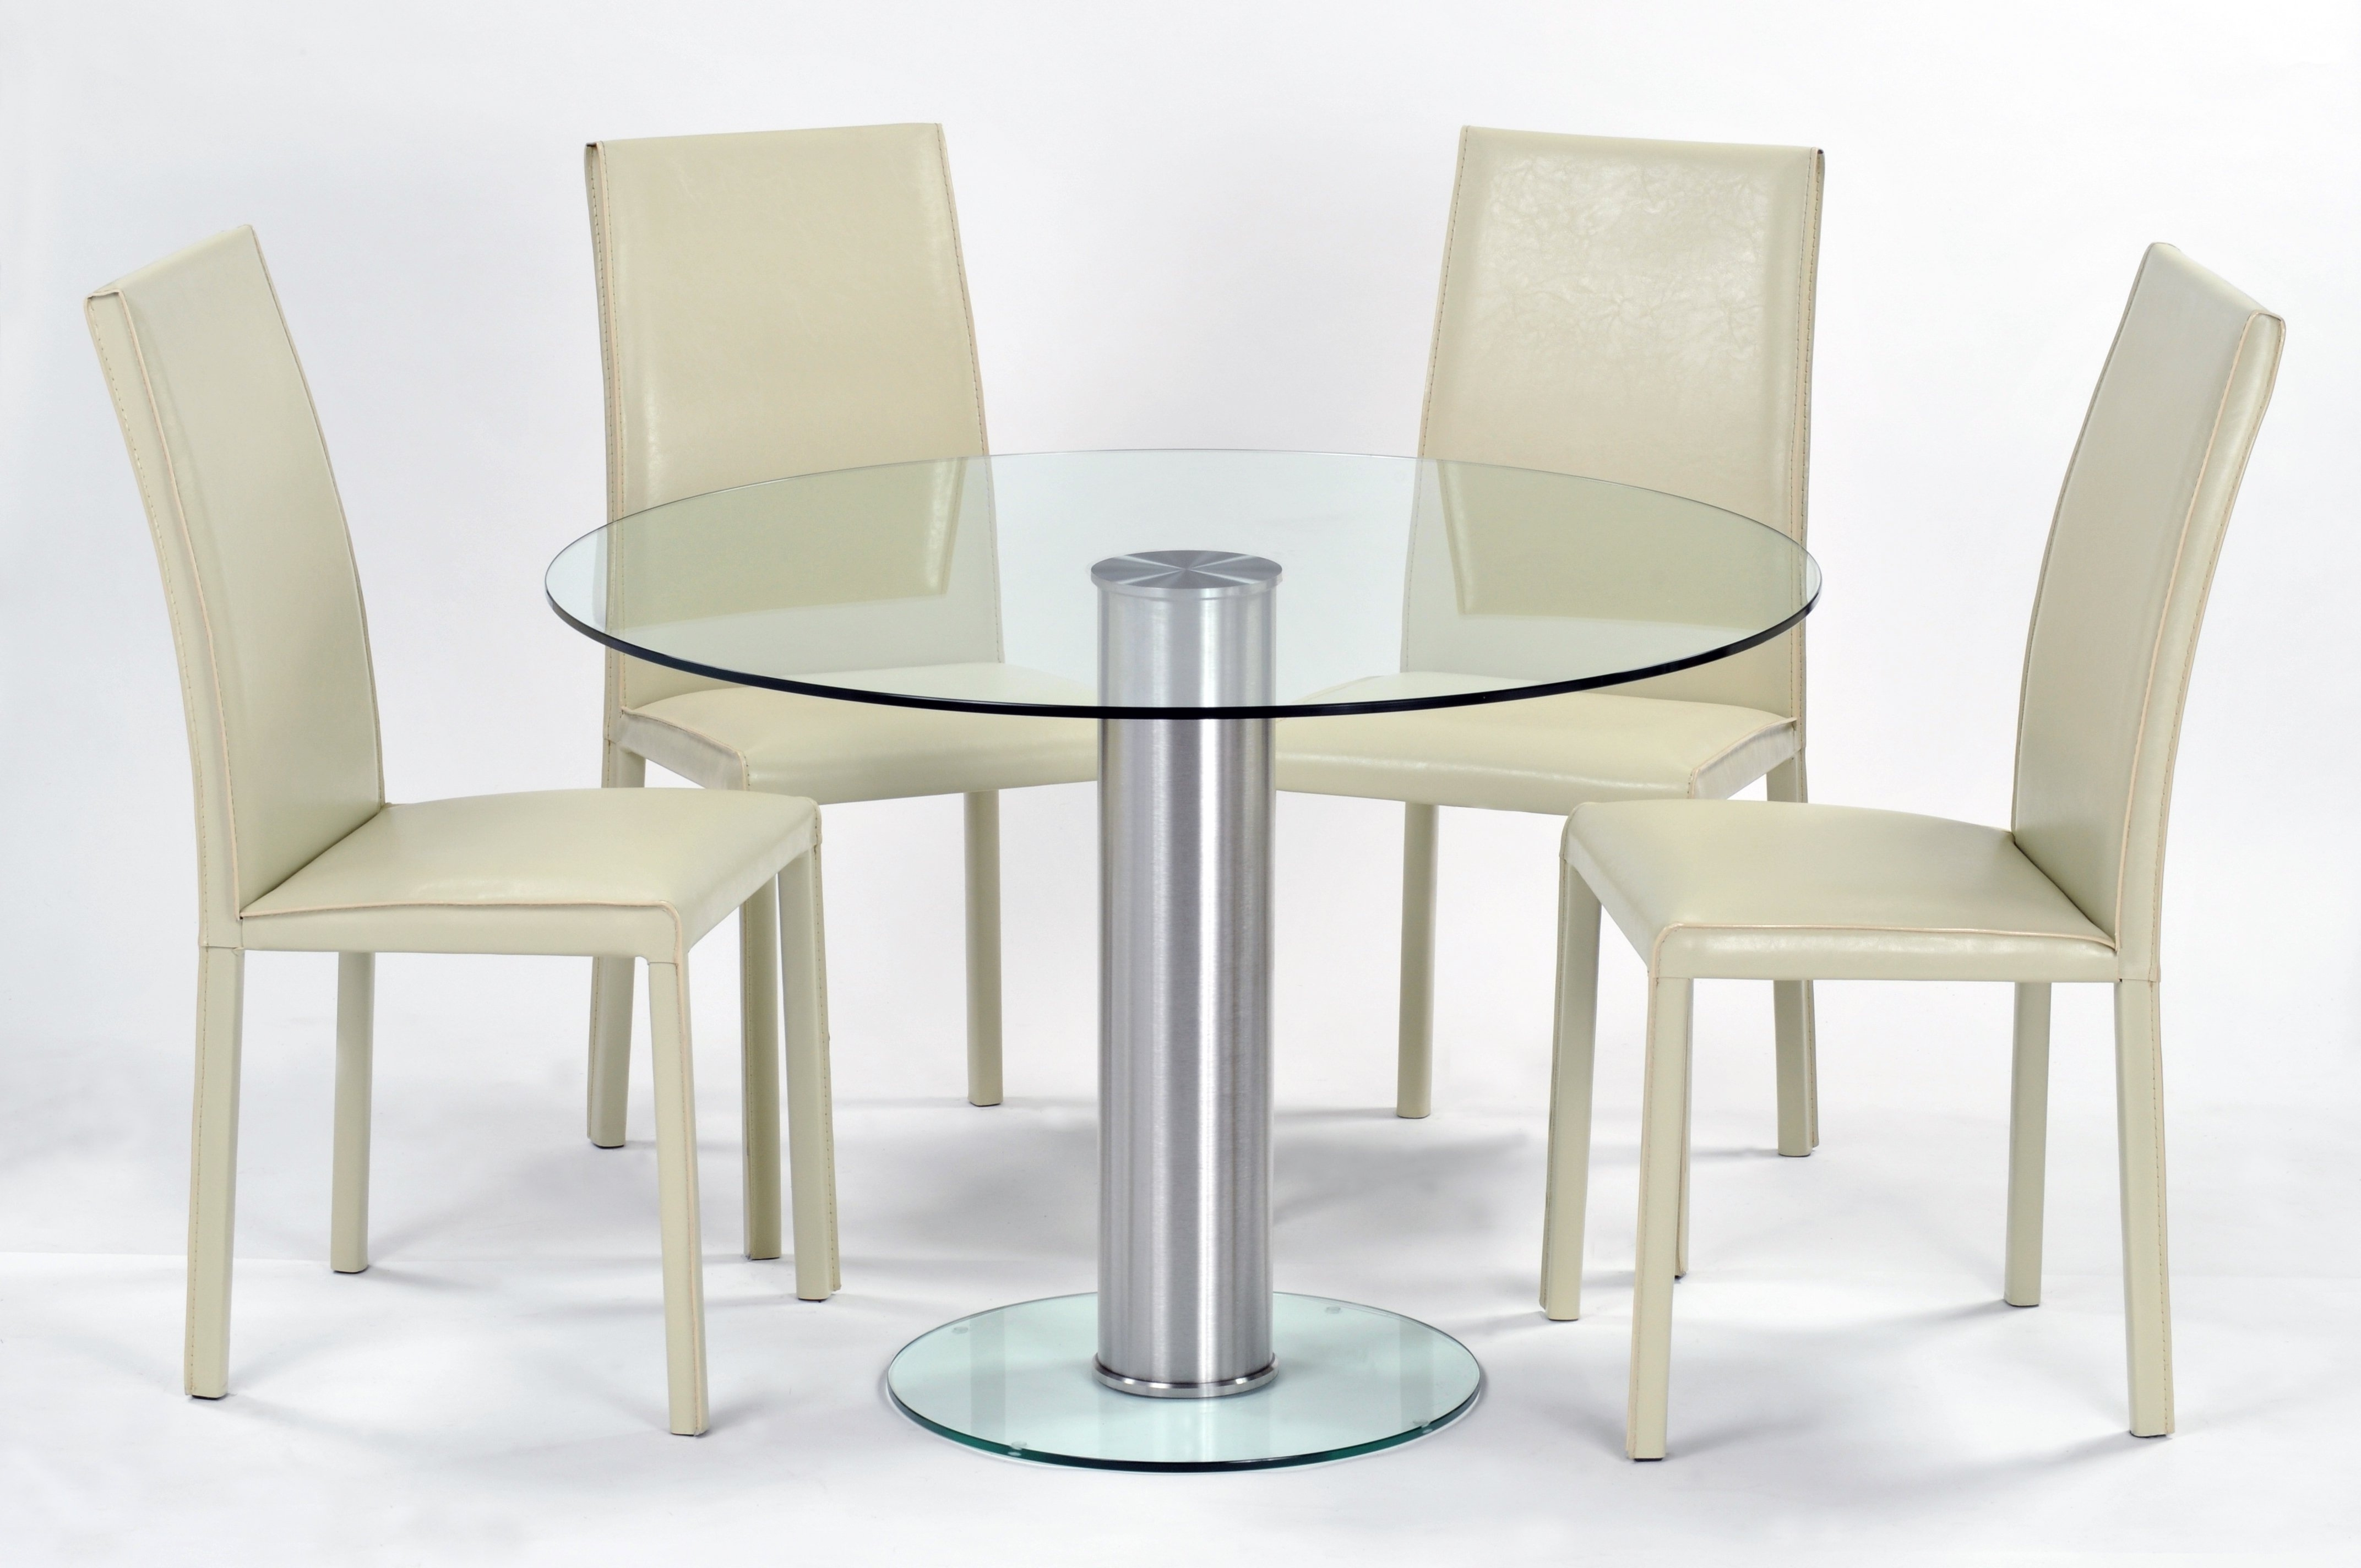 Trendy Compact Dining Tables Pertaining To Compact Dining Table And Chair Sets – Castrophotos (View 22 of 25)